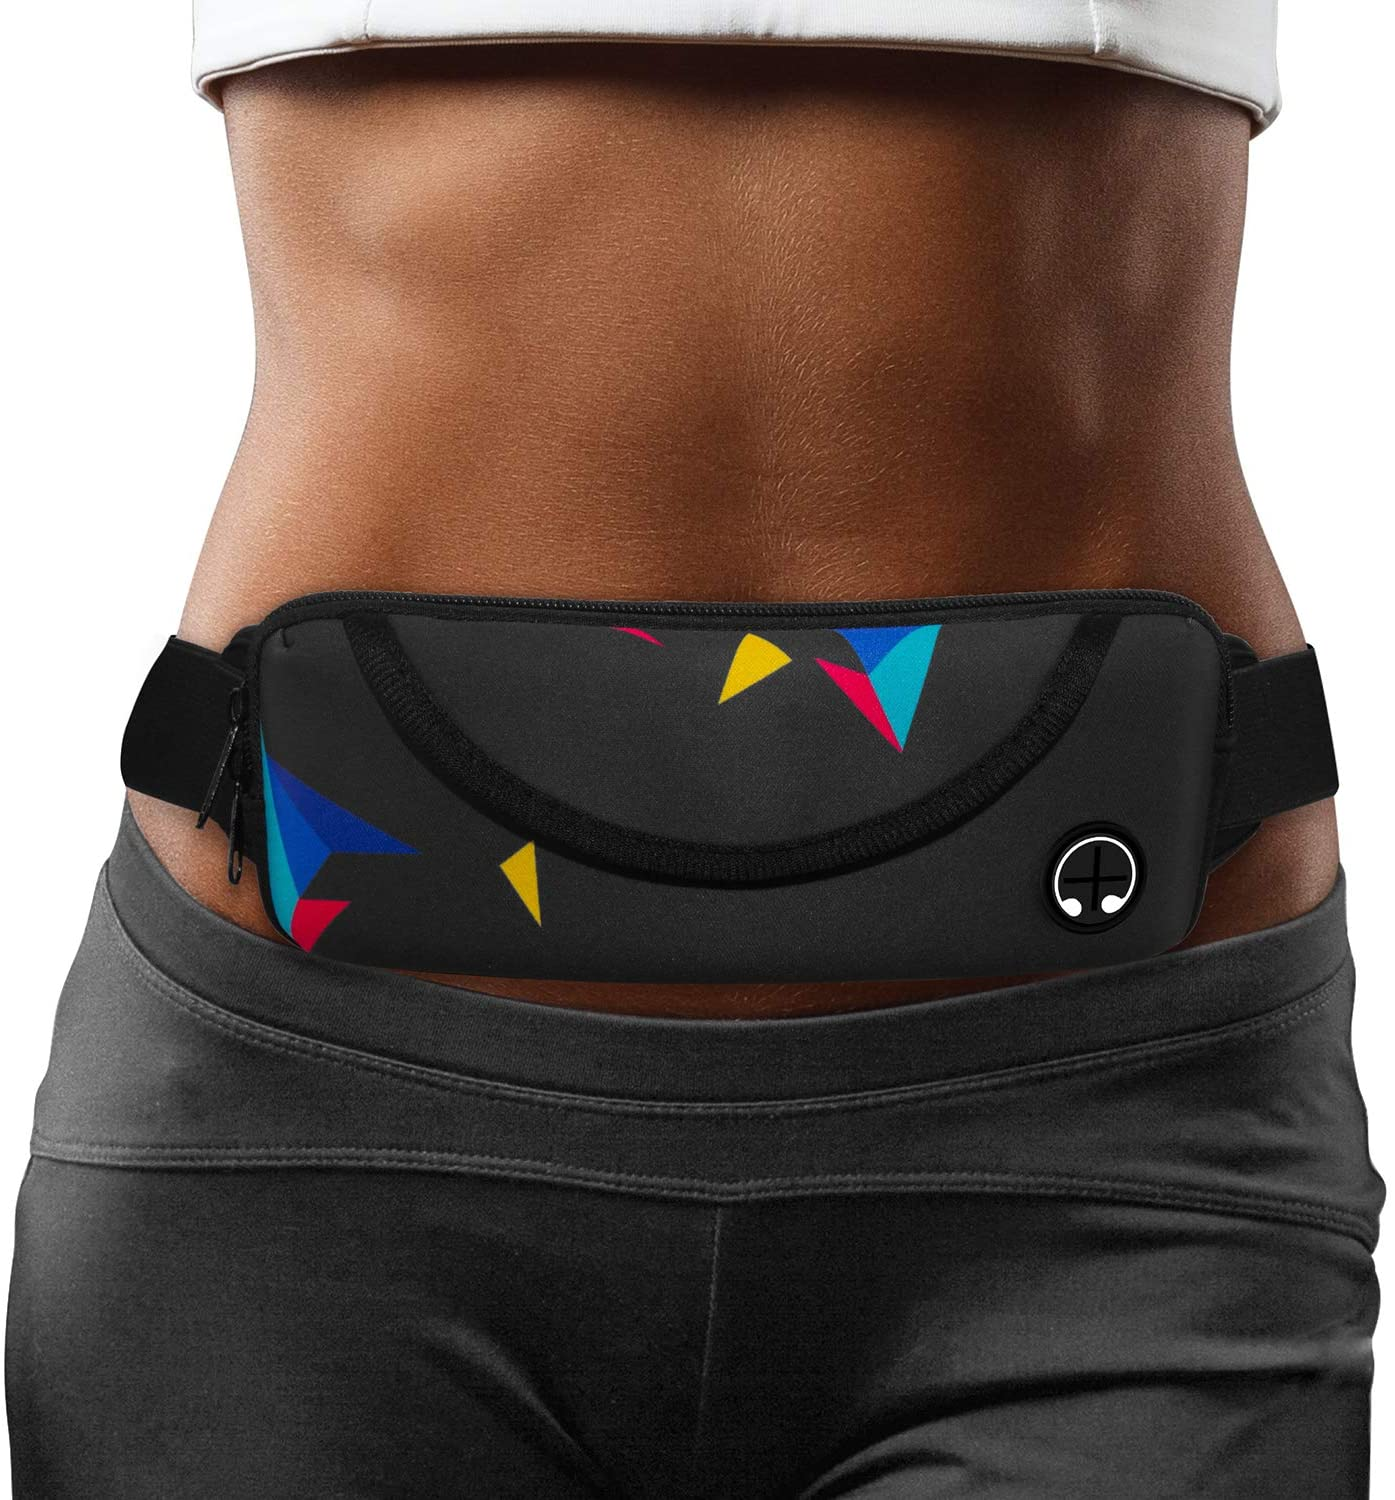 Airoak Running Belt, Ultra Light Bounce Free Waist Pouch Bag, Man&Women Fitness Sport Waist Pack with Two Storage Pockets, Headset Cable Hole, Exercise Waist Bag for iPhone Samsung in Gym Marathon